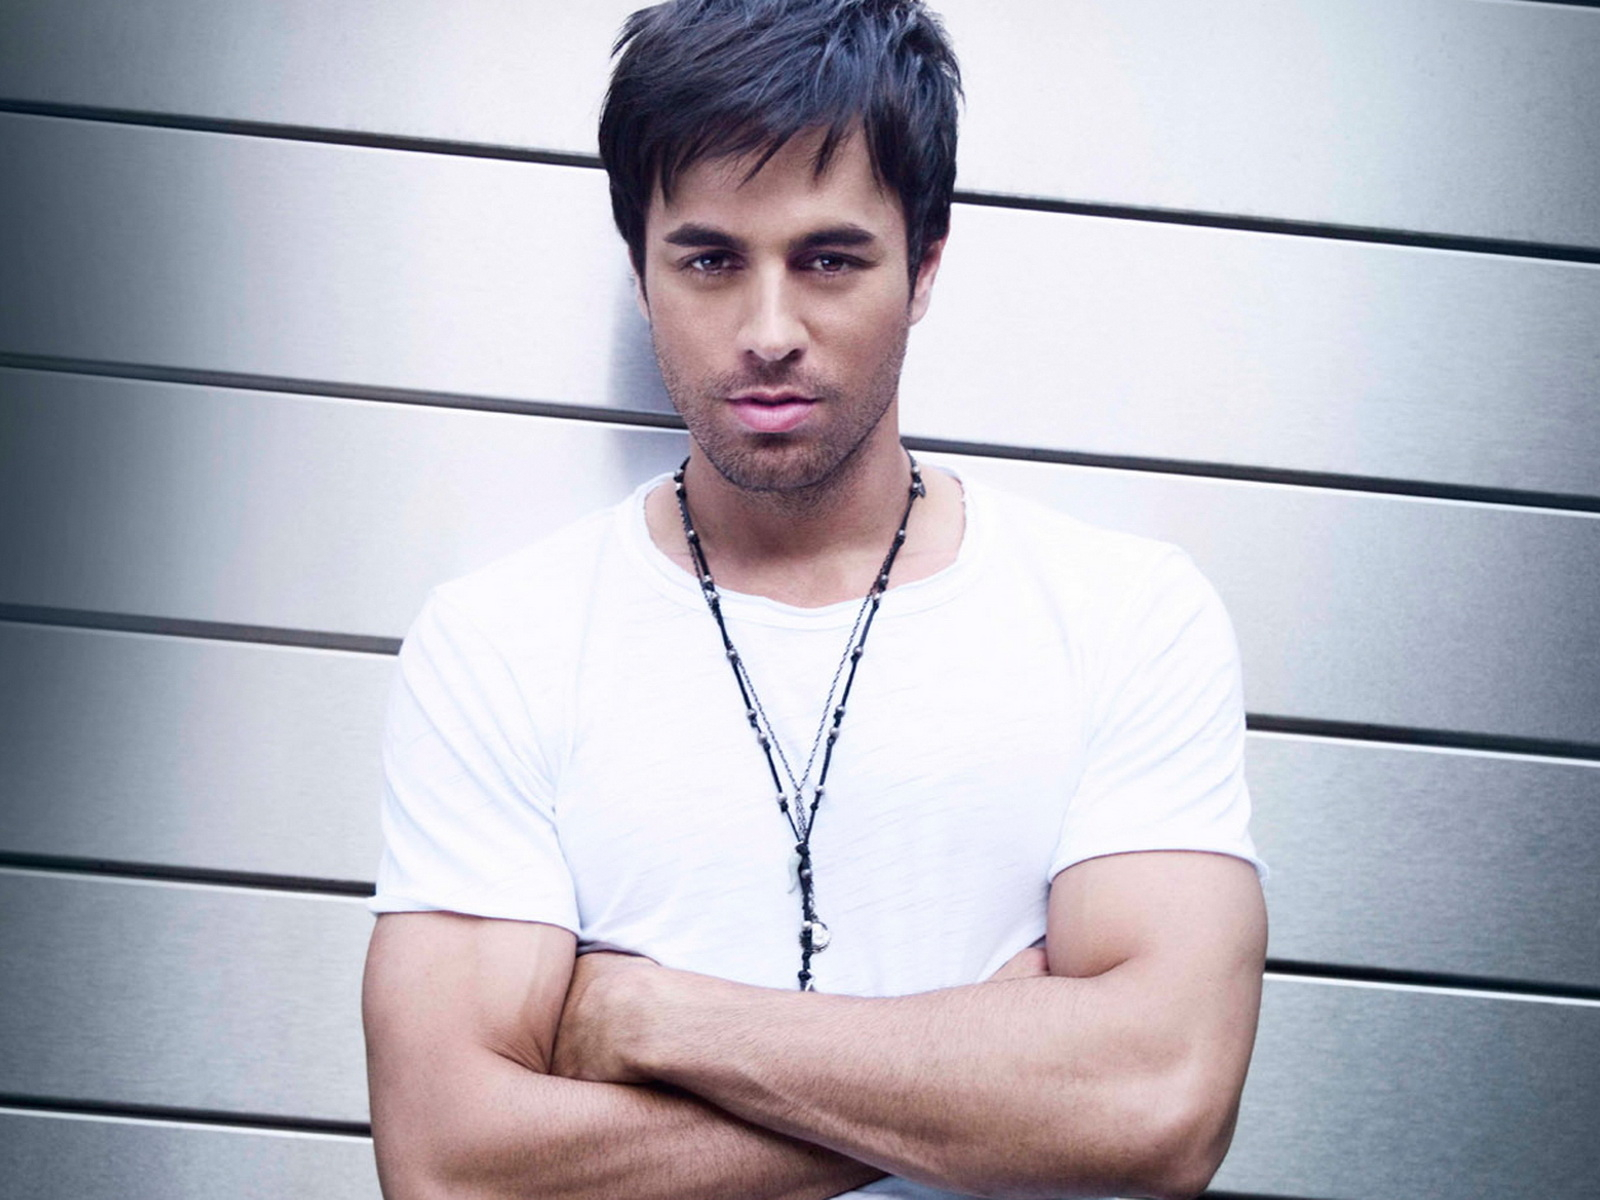 Hairstyle New Enrique Iglesias Hairstyles